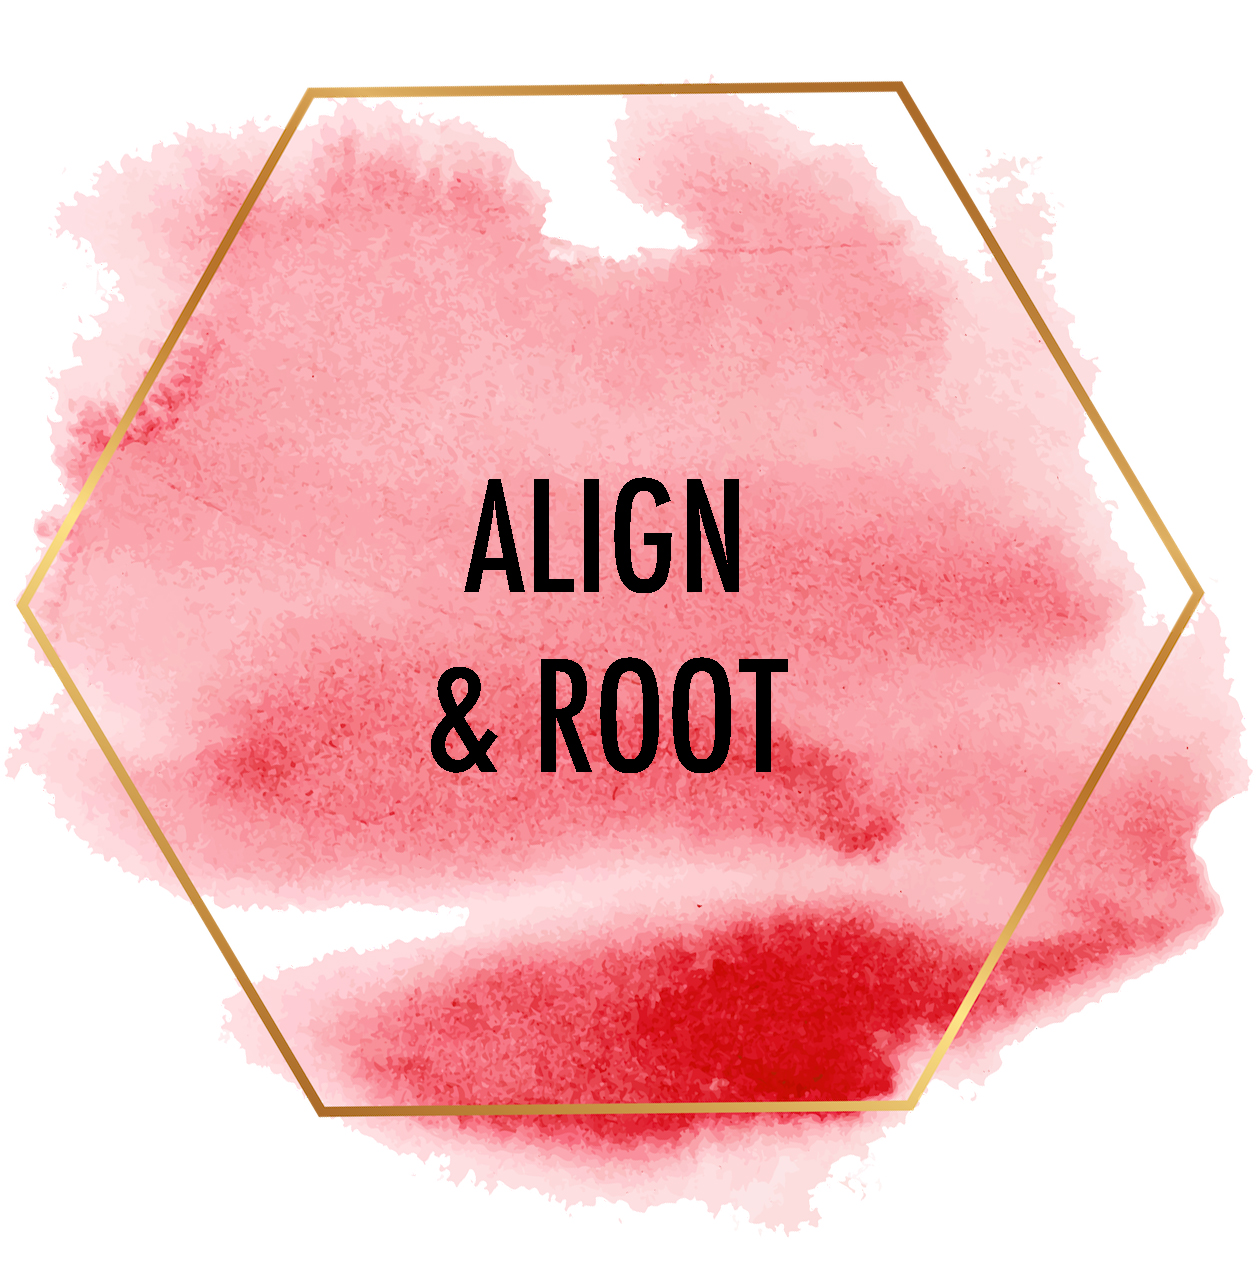 align and root image copy.jpg